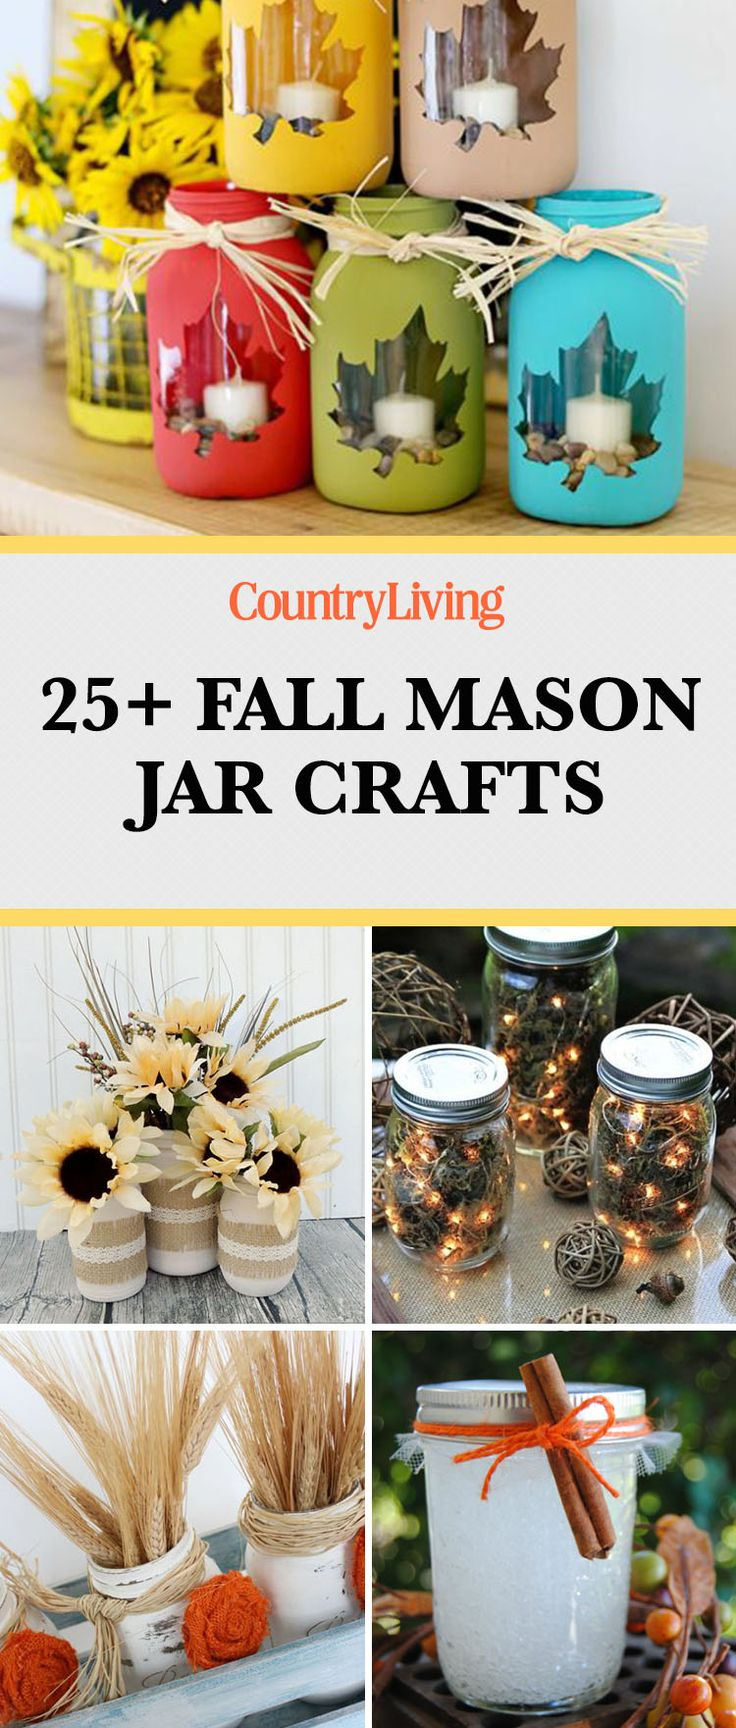 25 Mason Jar Crafts That Will Get You So Excited for Fall